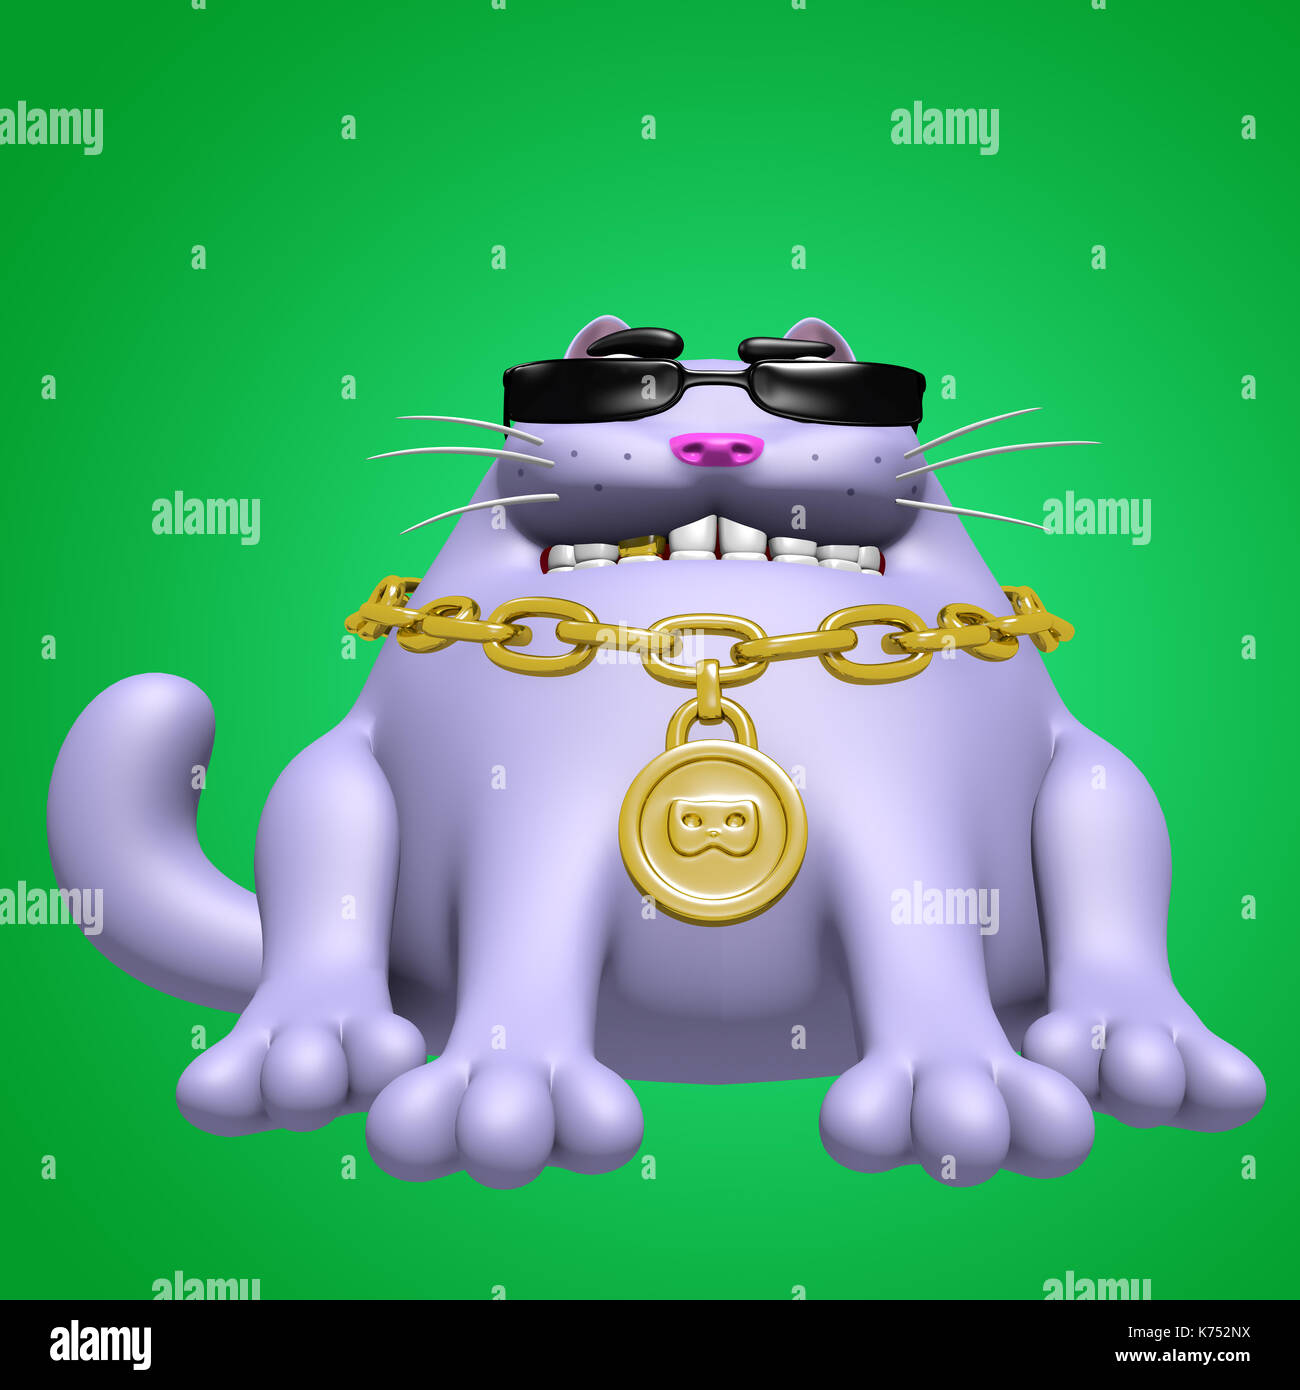 0547a1be835 Cute fat cat in black glasses and golden medallion. 3D illustration. Funny  cartoon character